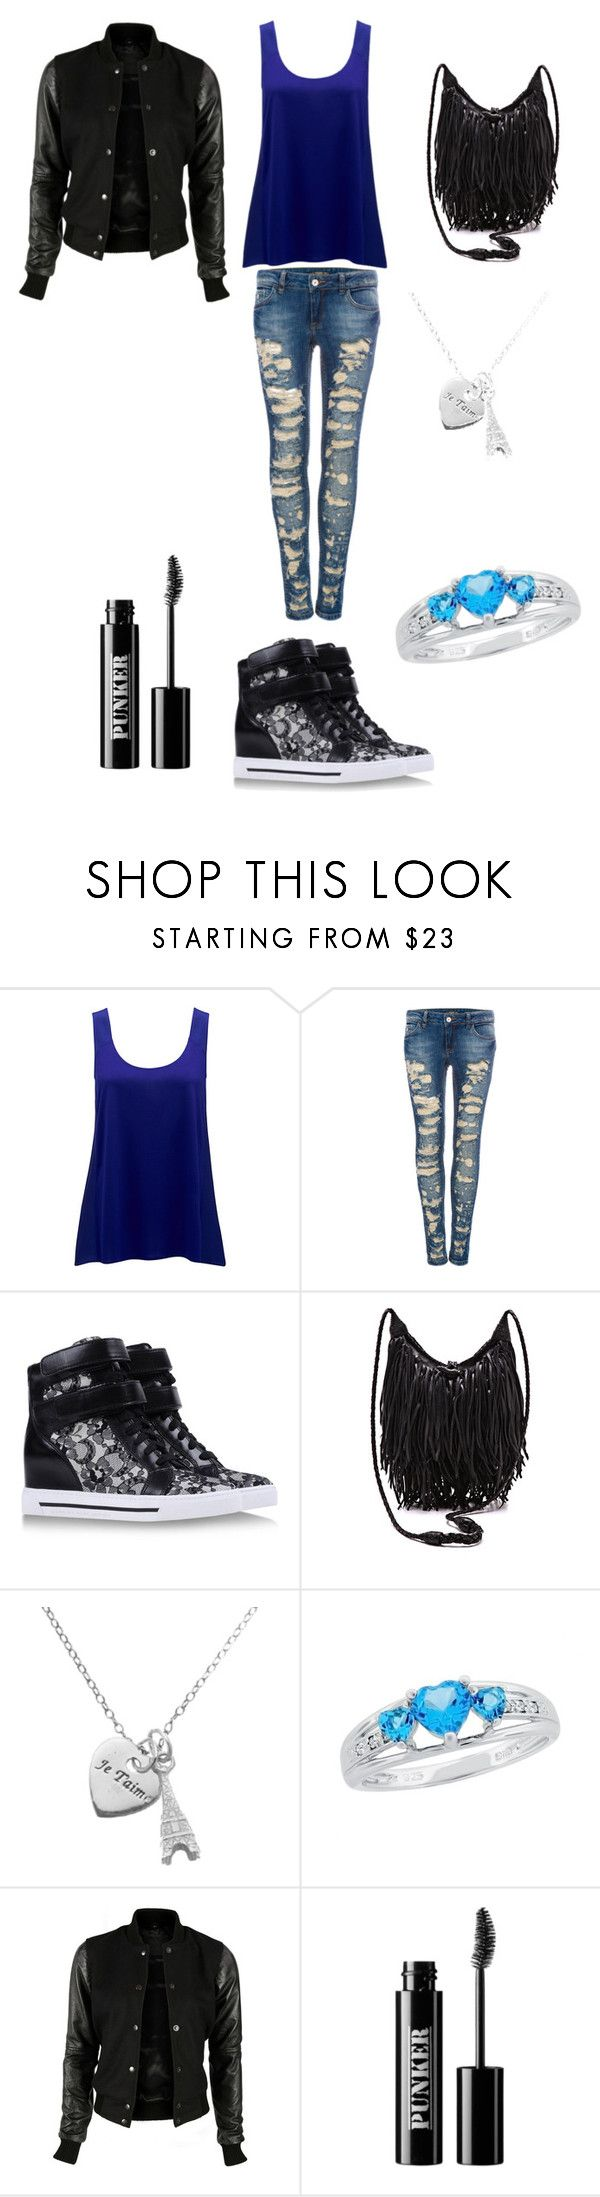 """""""Niall's Girlfriend"""" by dreamerlucyluv ❤ liked on Polyvore featuring Forever New, Pull&Bear, Marc by Marc Jacobs, Accessorize, Reeds Jewelers, VIPARO and Ardency Inn"""